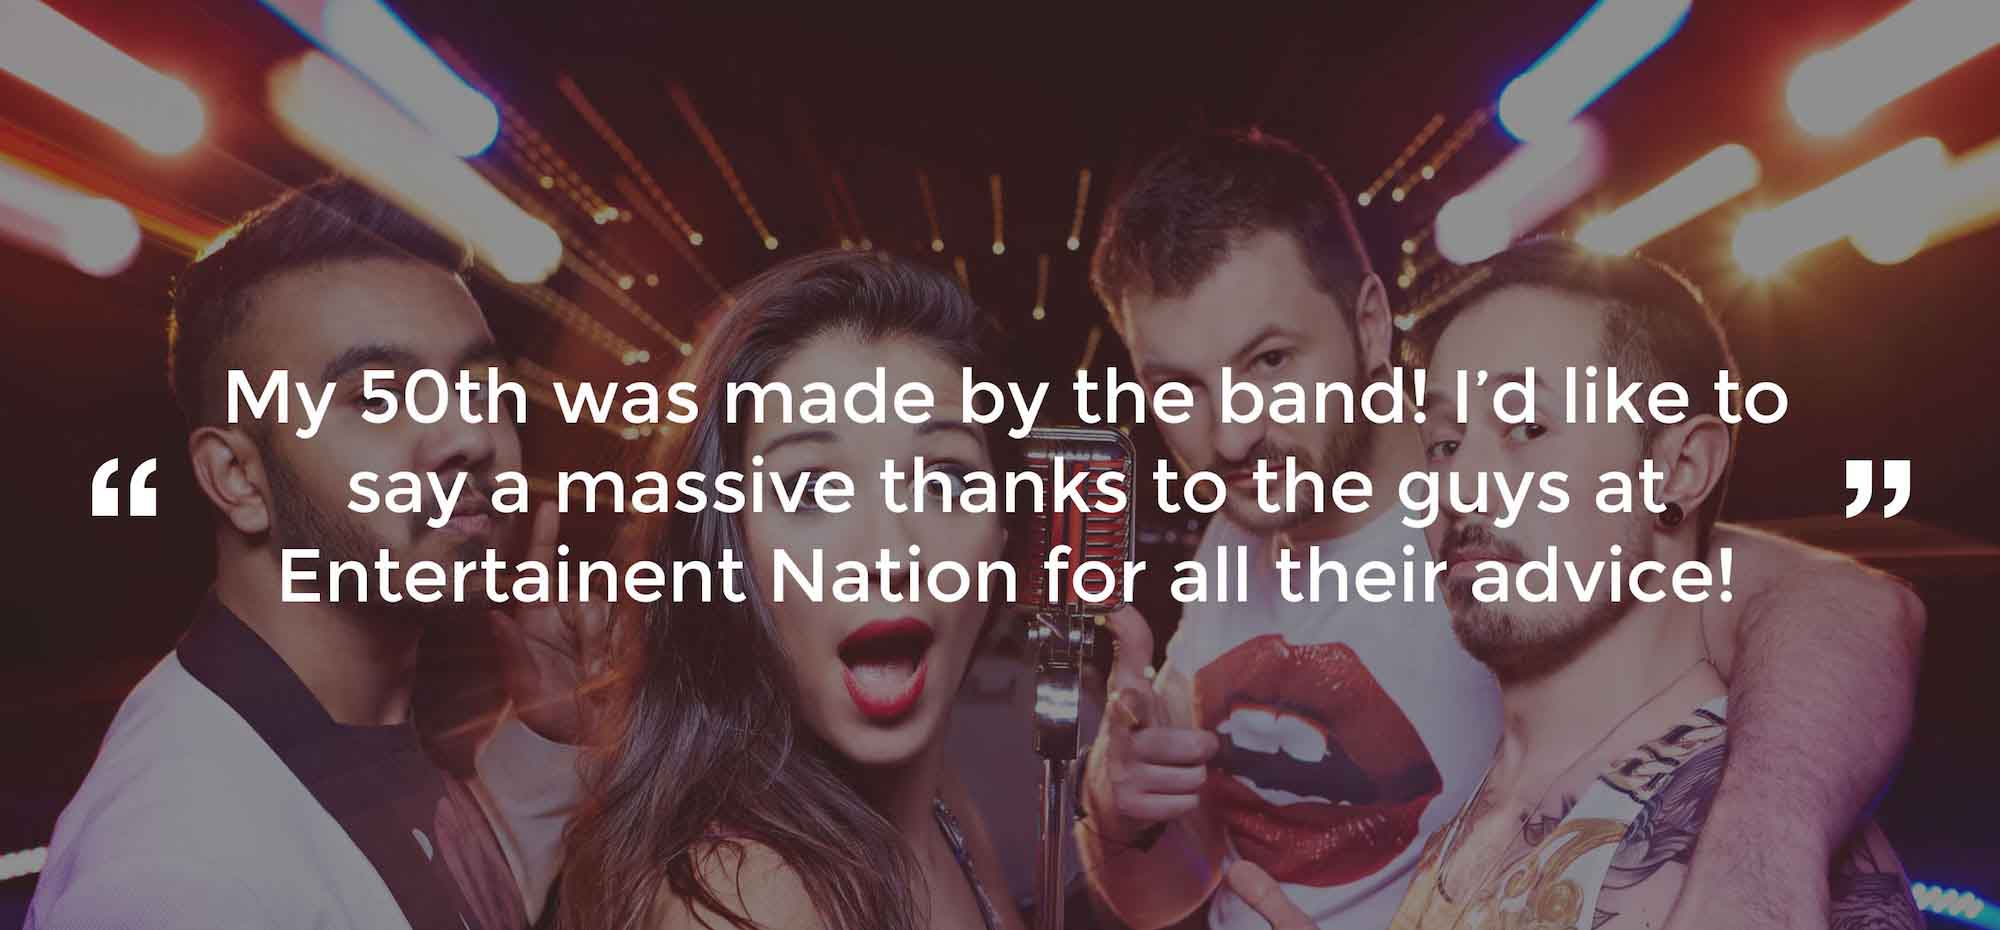 Client Review of a Party Band Merseyside